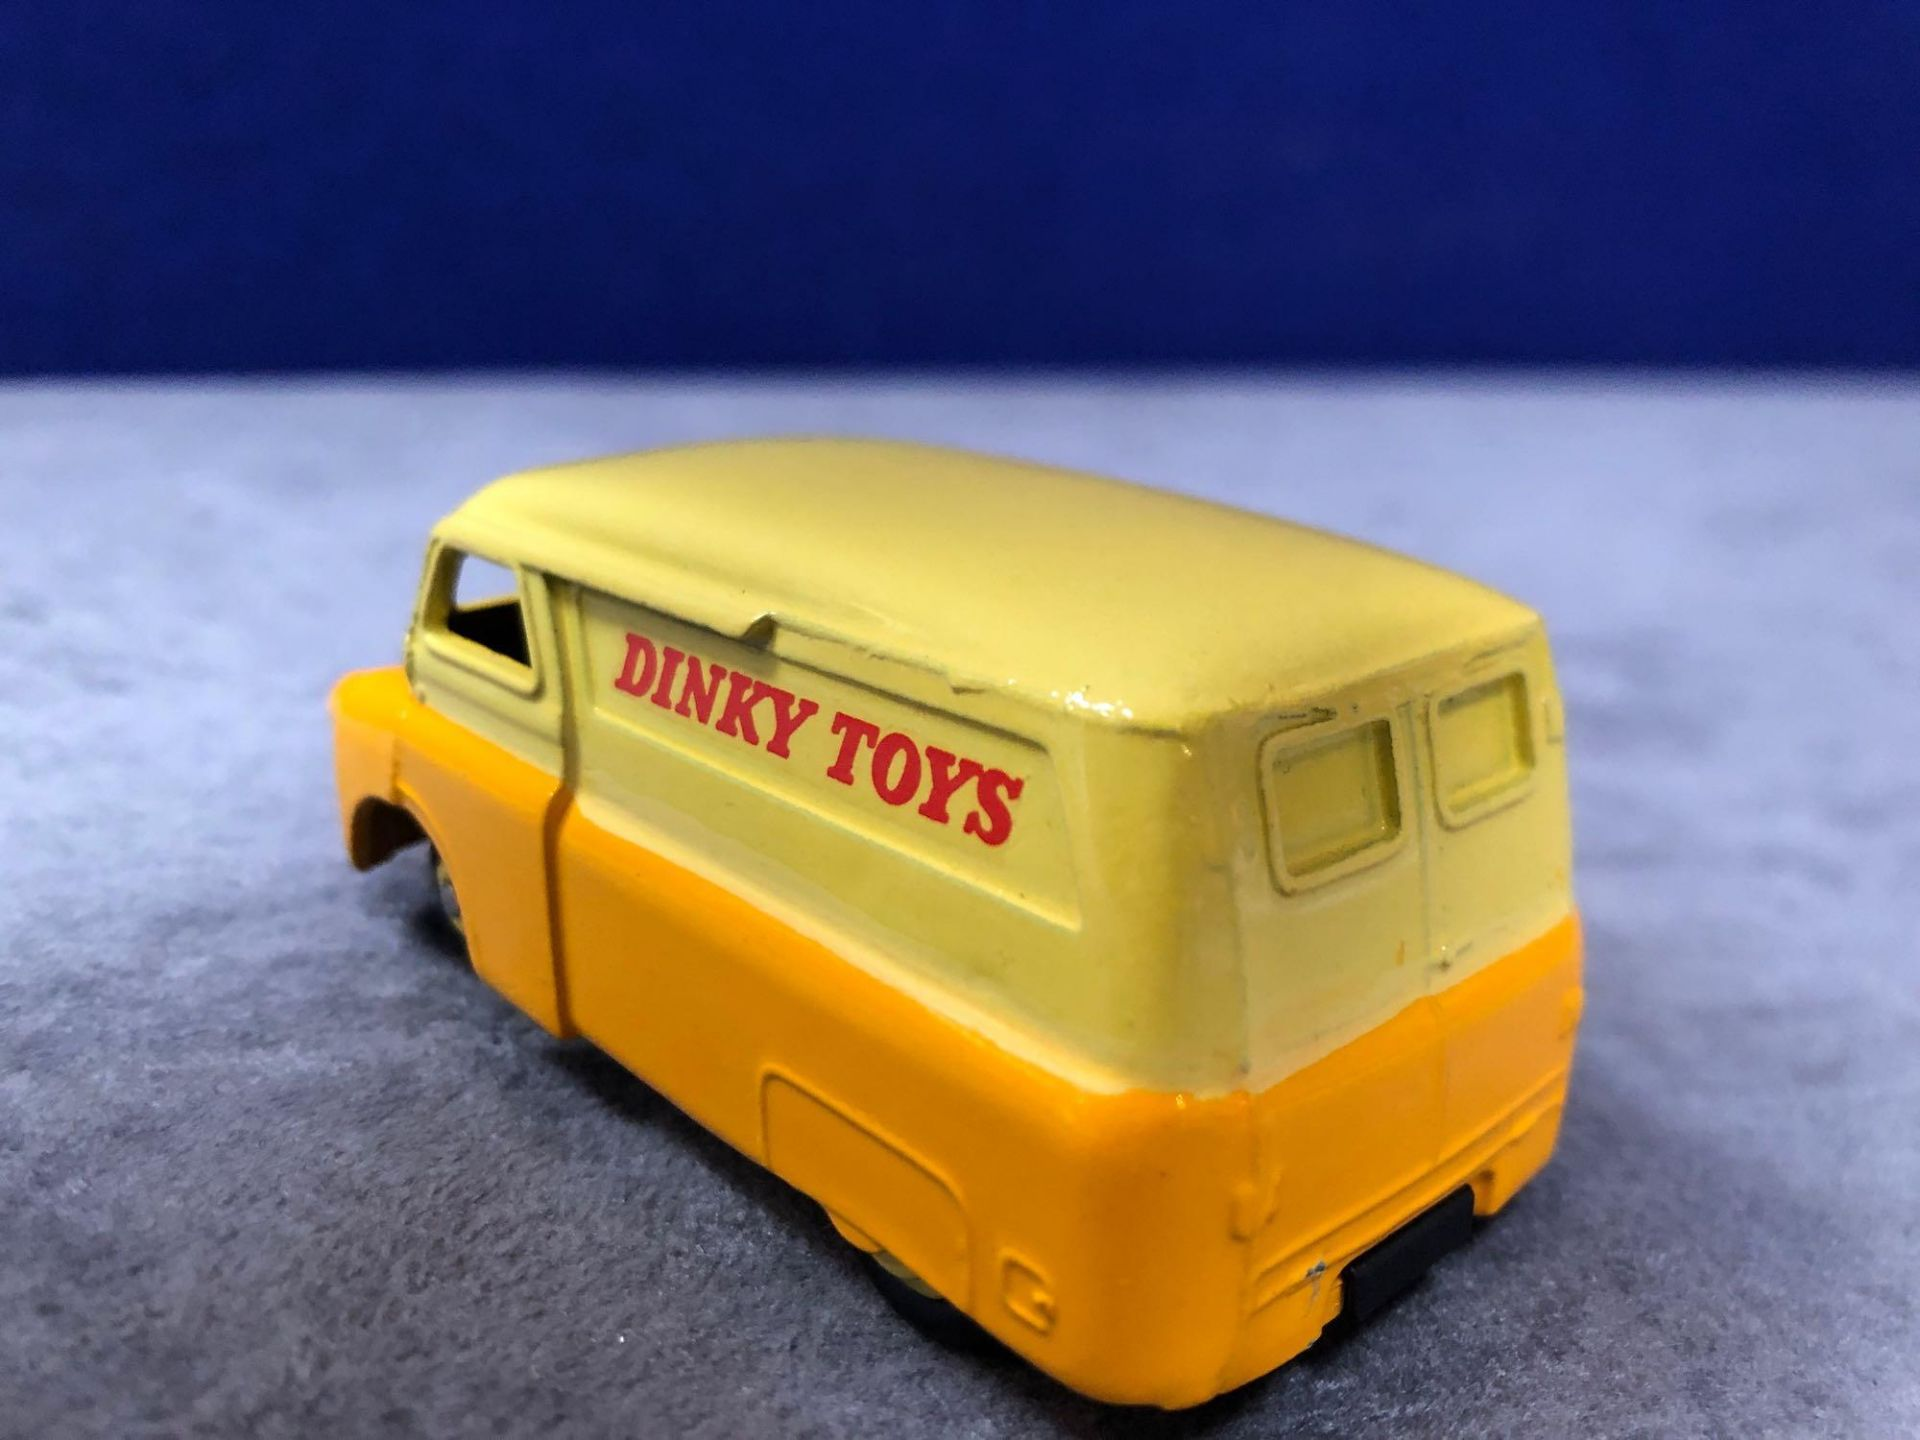 Dinky #482 Bedford Van Yellow/Orange (Dinky Toys) - Yellow Wheels and Silver Trim. 1956 - 1960 - Image 3 of 4